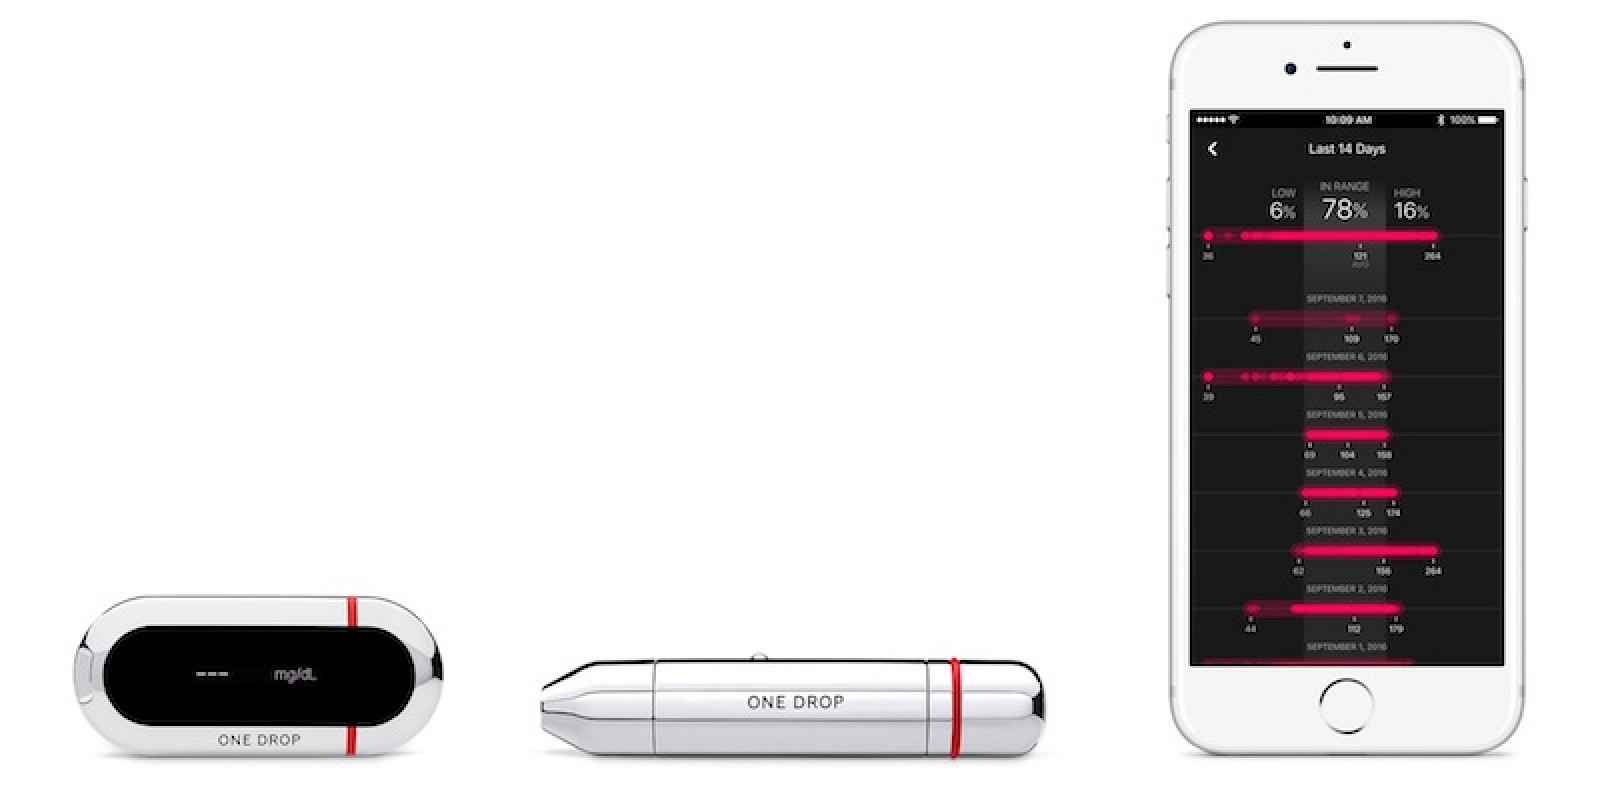 One Drop Blood Glucose Monitoring Kit for iPhone Launches on Apple.com